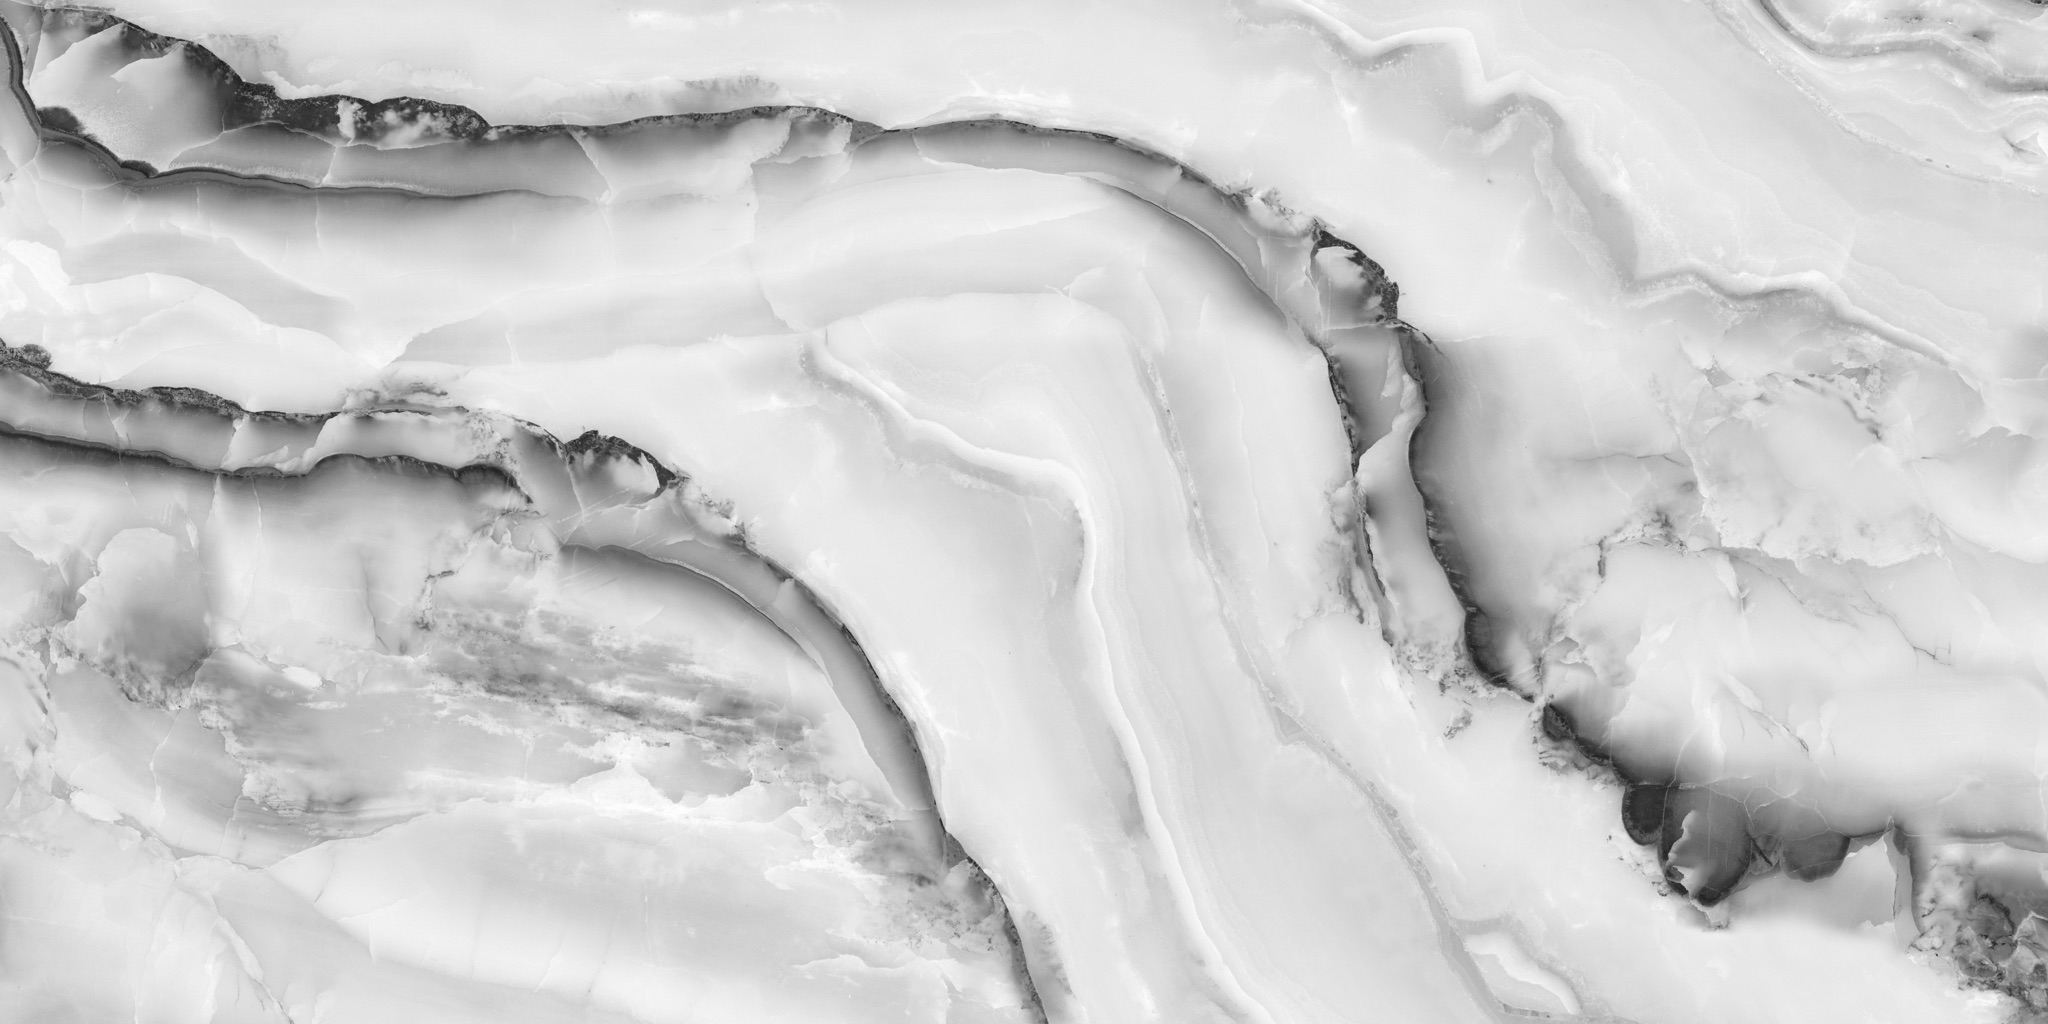 Close up of marble slab with white and gray veining